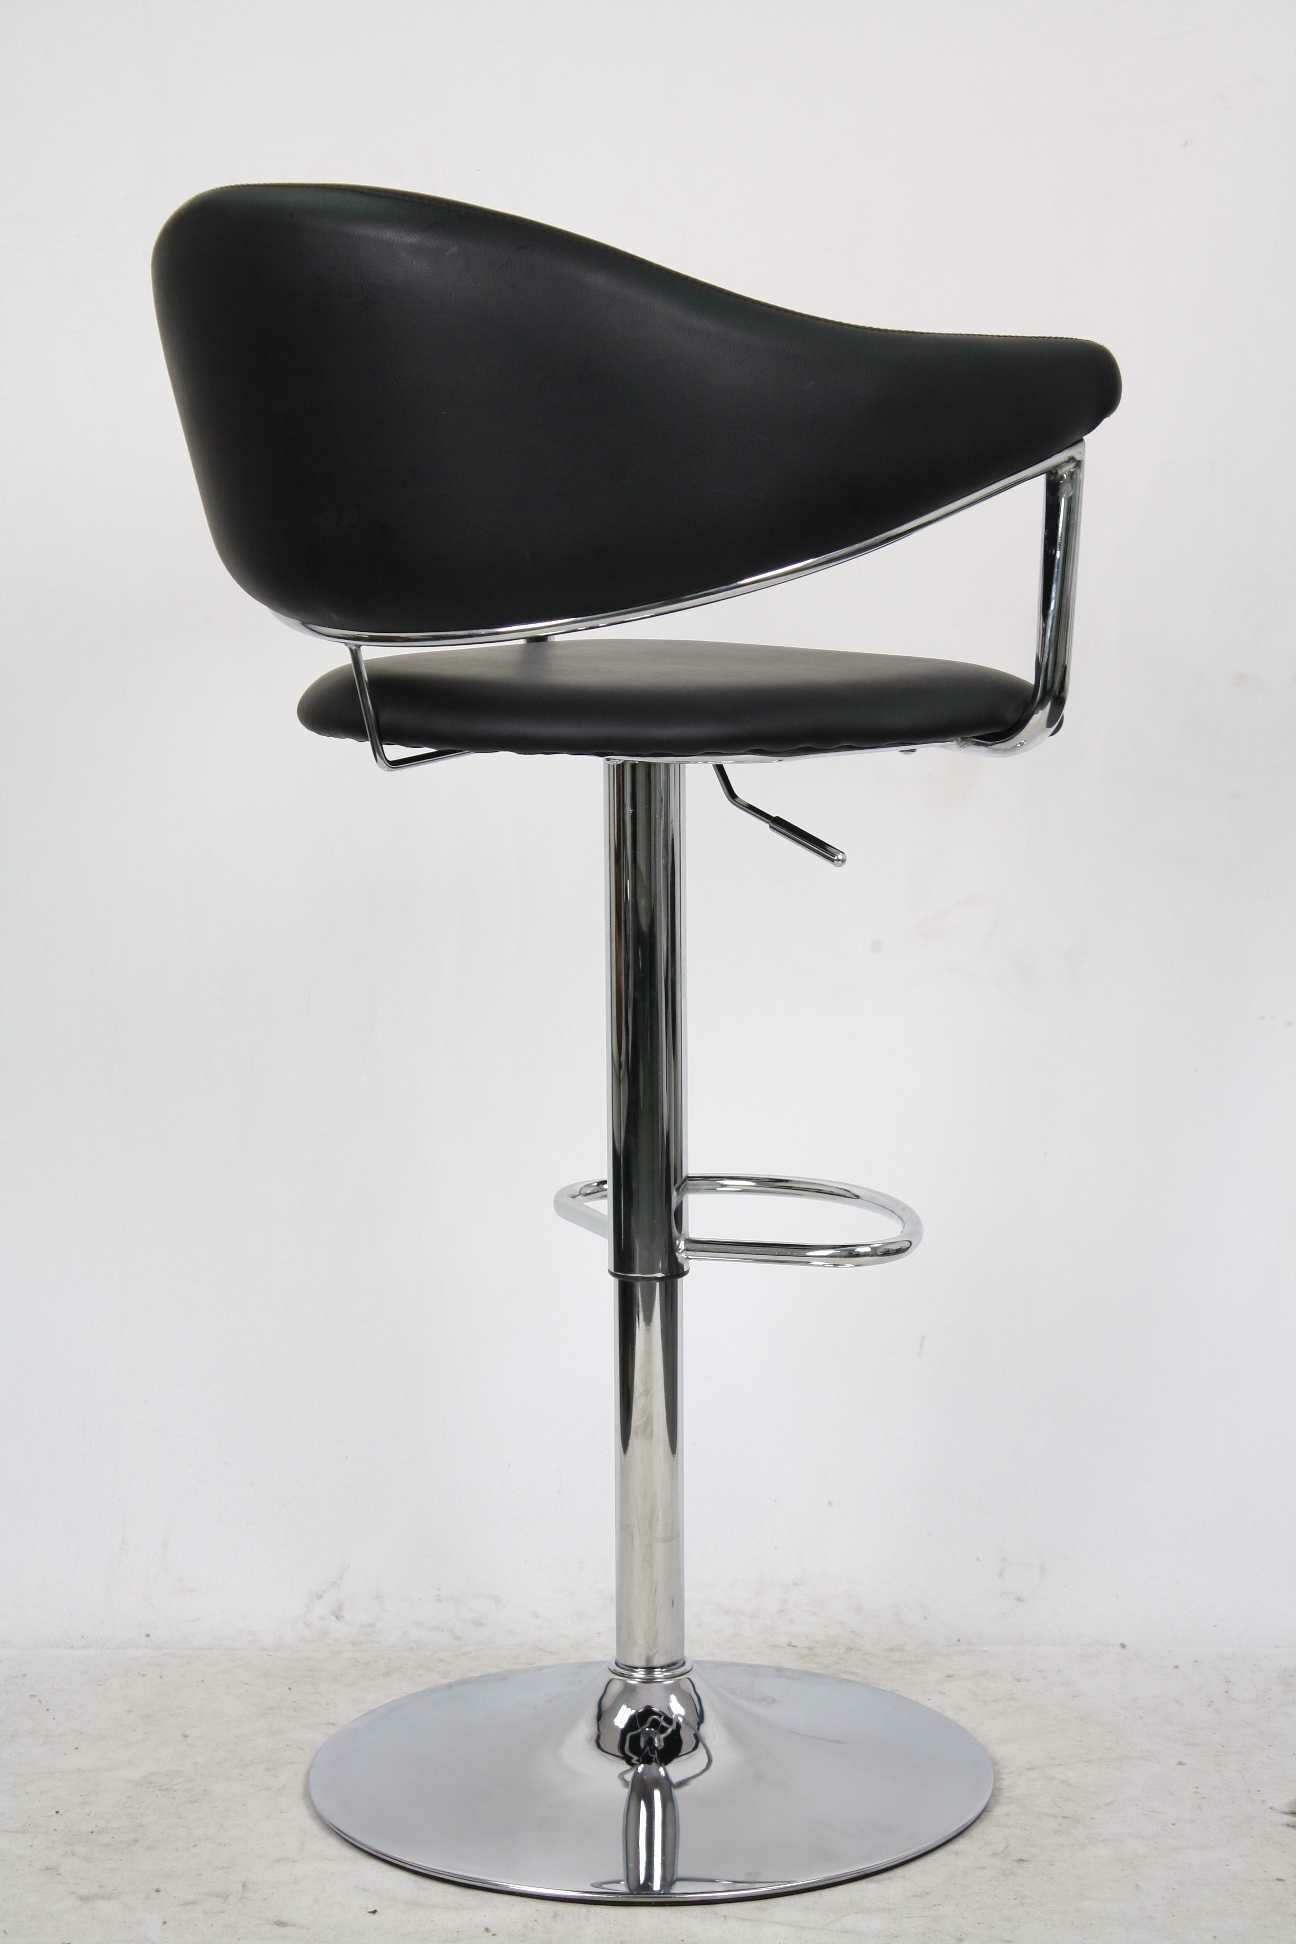 Whalen Furniture Airstream Gas Lift Bar Stool Ebay